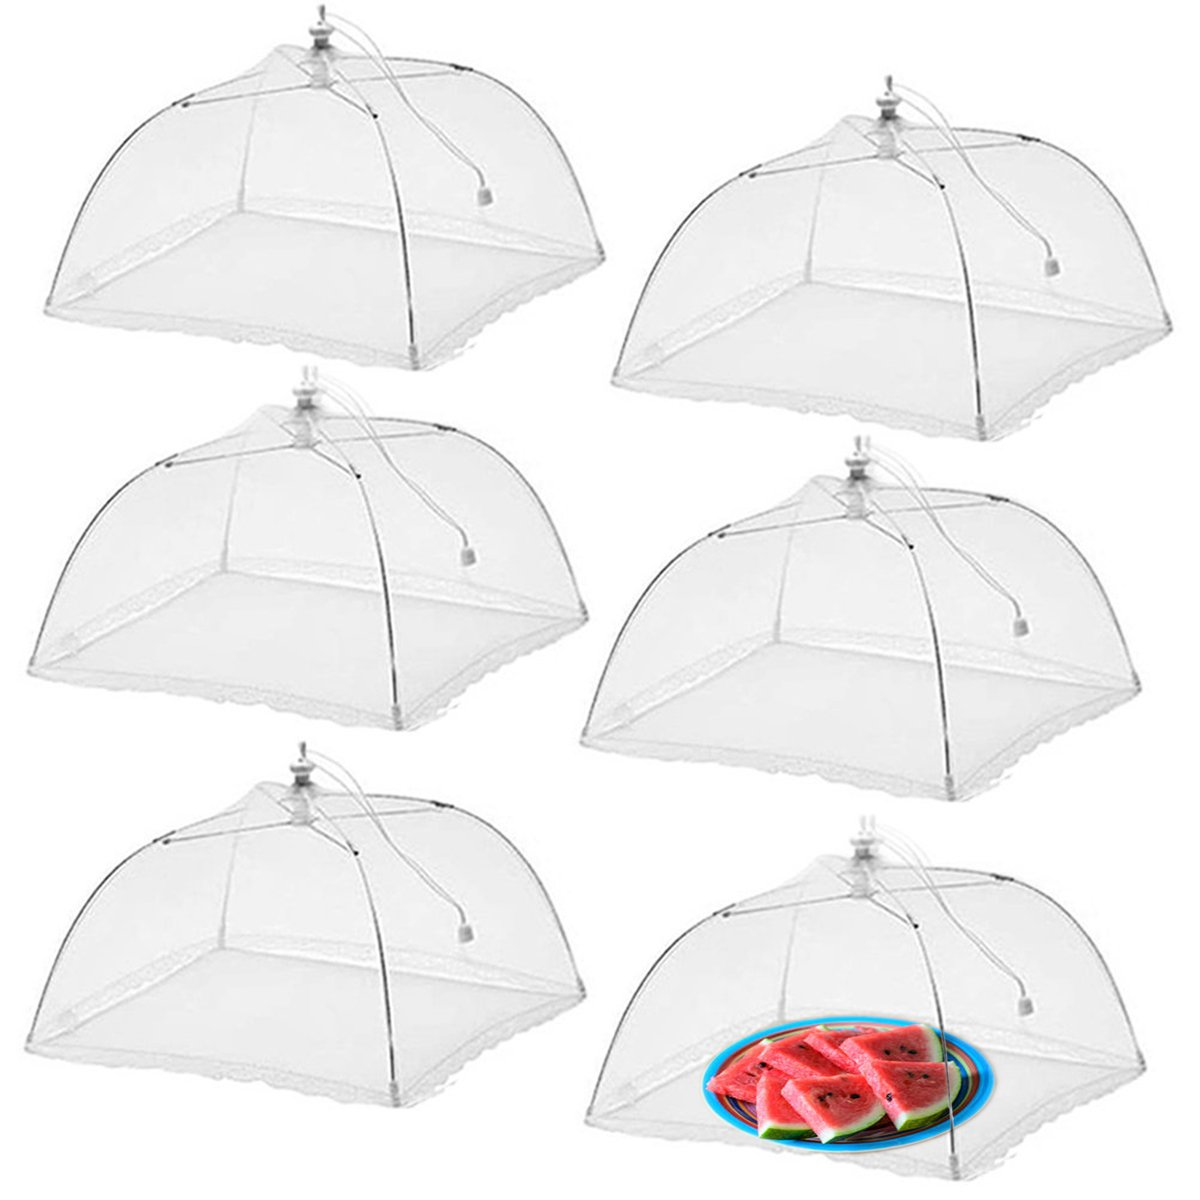 Simply Genius (6 pack) Large and Tall 17x17 Pop-Up Mesh Food Covers Tent Umbrella for Outdoors, Screen Tents Protectors For Bugs, Parties Picnics, BBQs, Reusable and Collapsible by Simply Genius (Image #1)